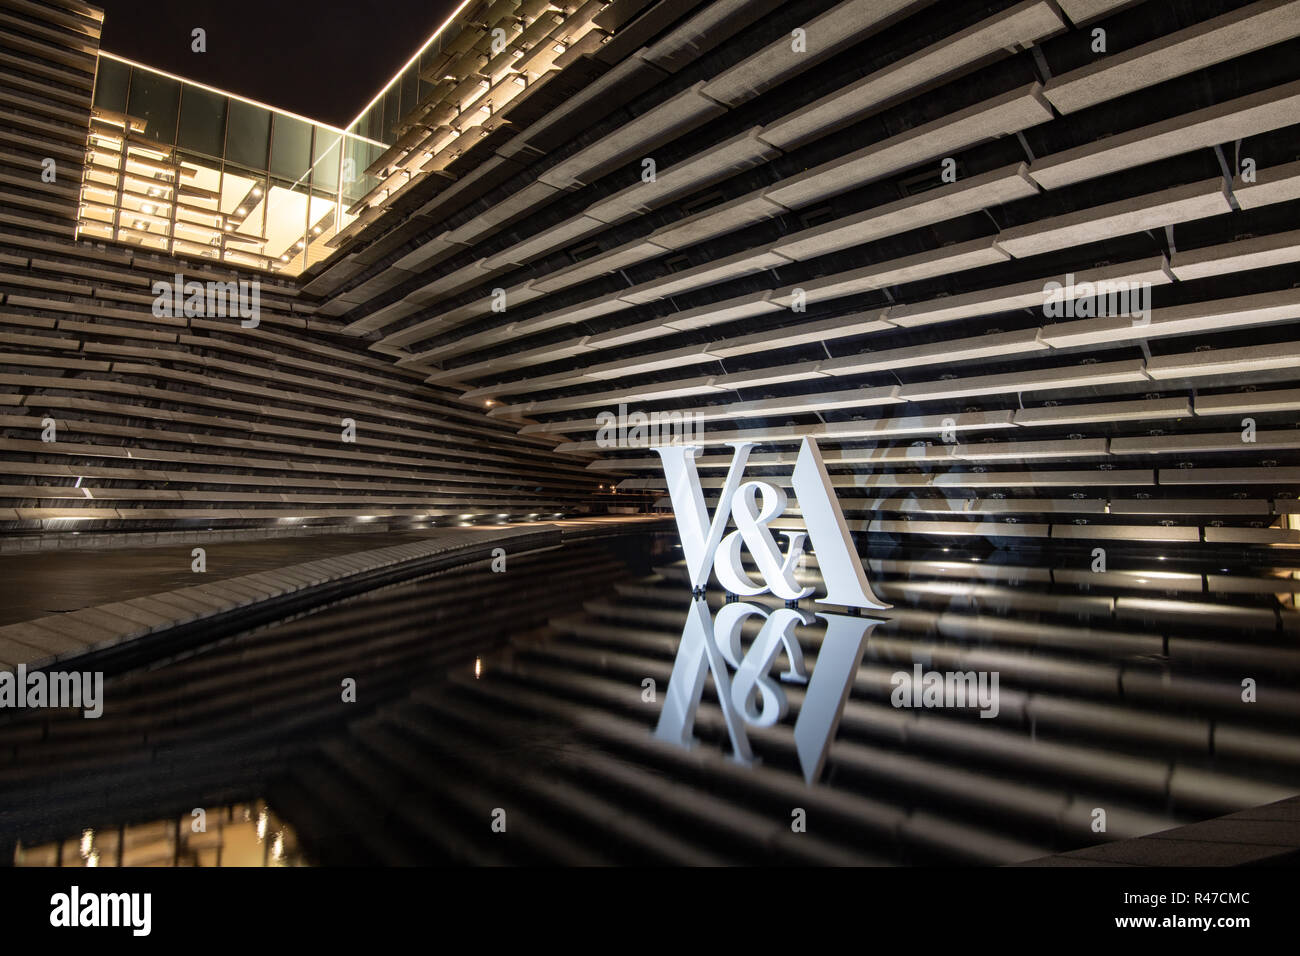 V&A Dundee at night - Stock Image